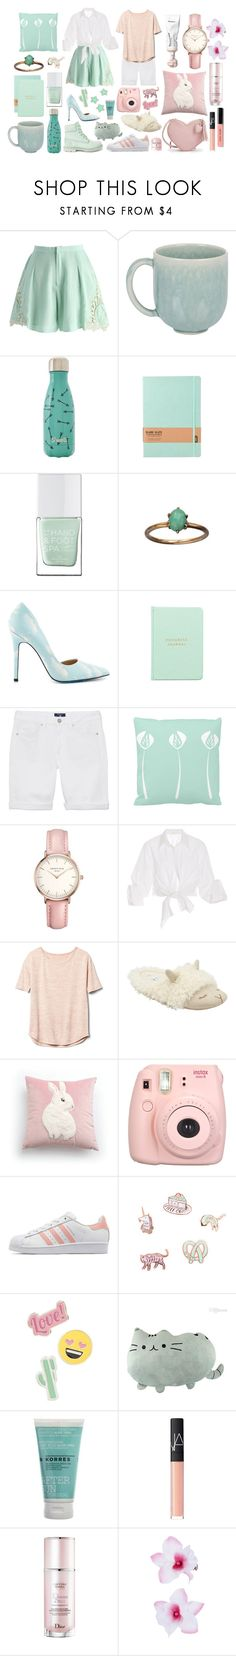 """034 ; Mint vs Blush"" by liljackanape ❤ liked on Polyvore featuring Chicwish, Jars, S'well, The Hand & Foot Spa, TaylorSays, MiGOALS, GANT, ROSEFIELD, Johanna Ortiz and Gap"